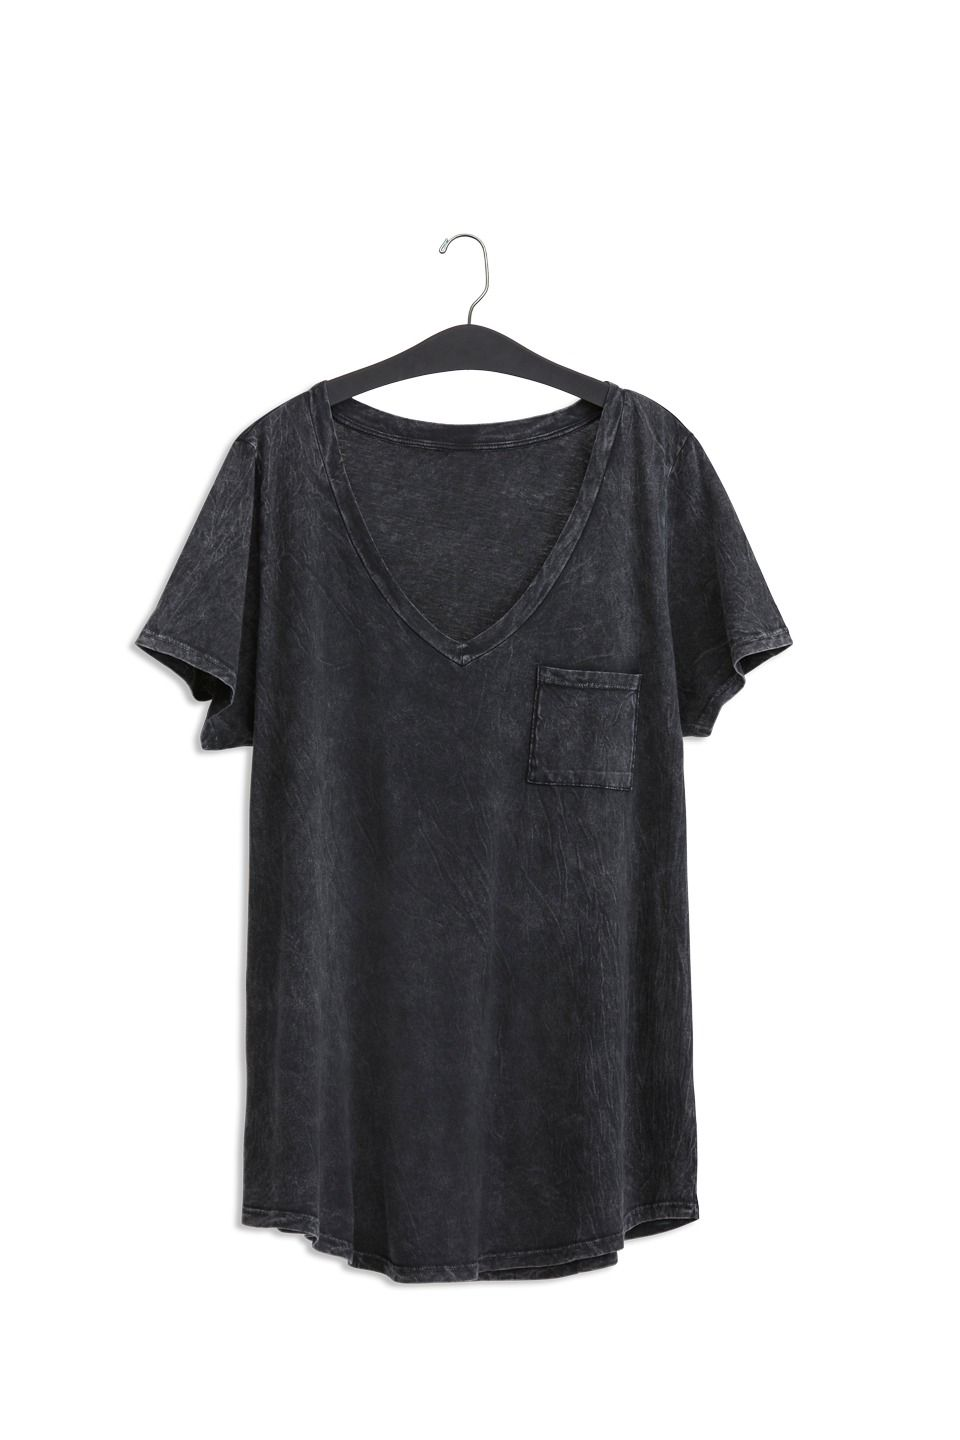 84ecb752d8f Premium Black Mineral Wash V-Neck Tee  Plus Size Clothing   TORRID ...